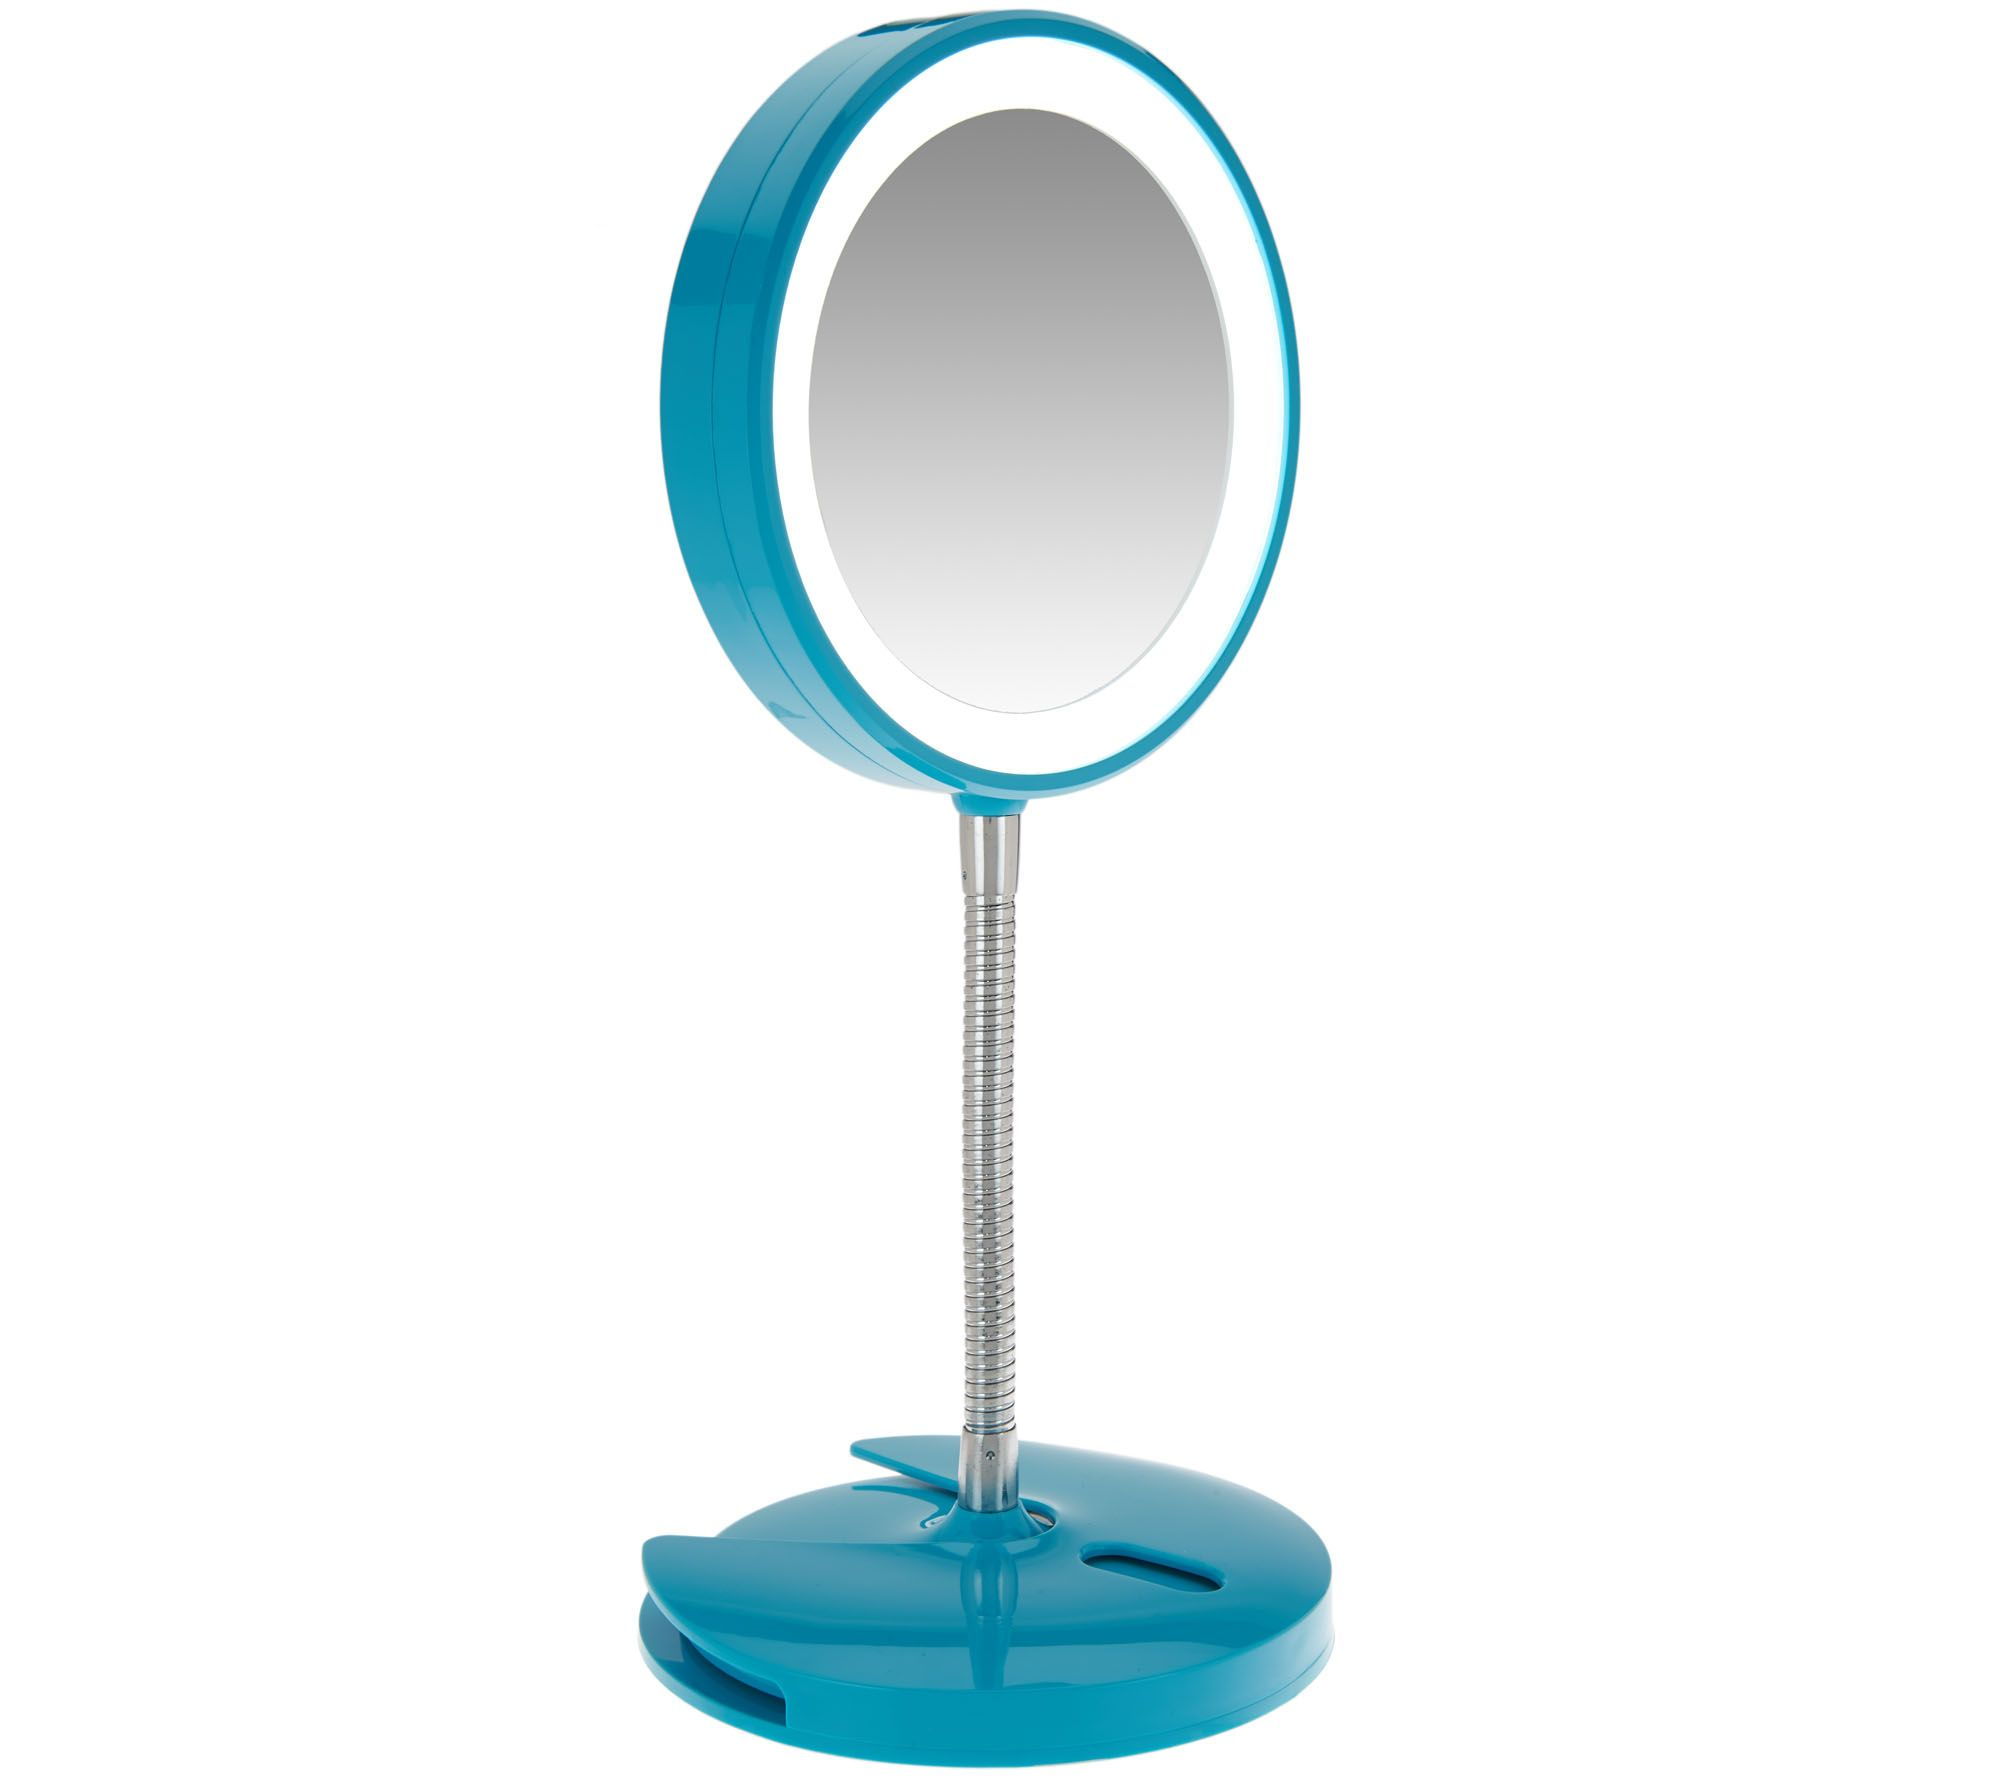 Conair 5x magnification led mirror with wall mount page 1 qvc amipublicfo Images